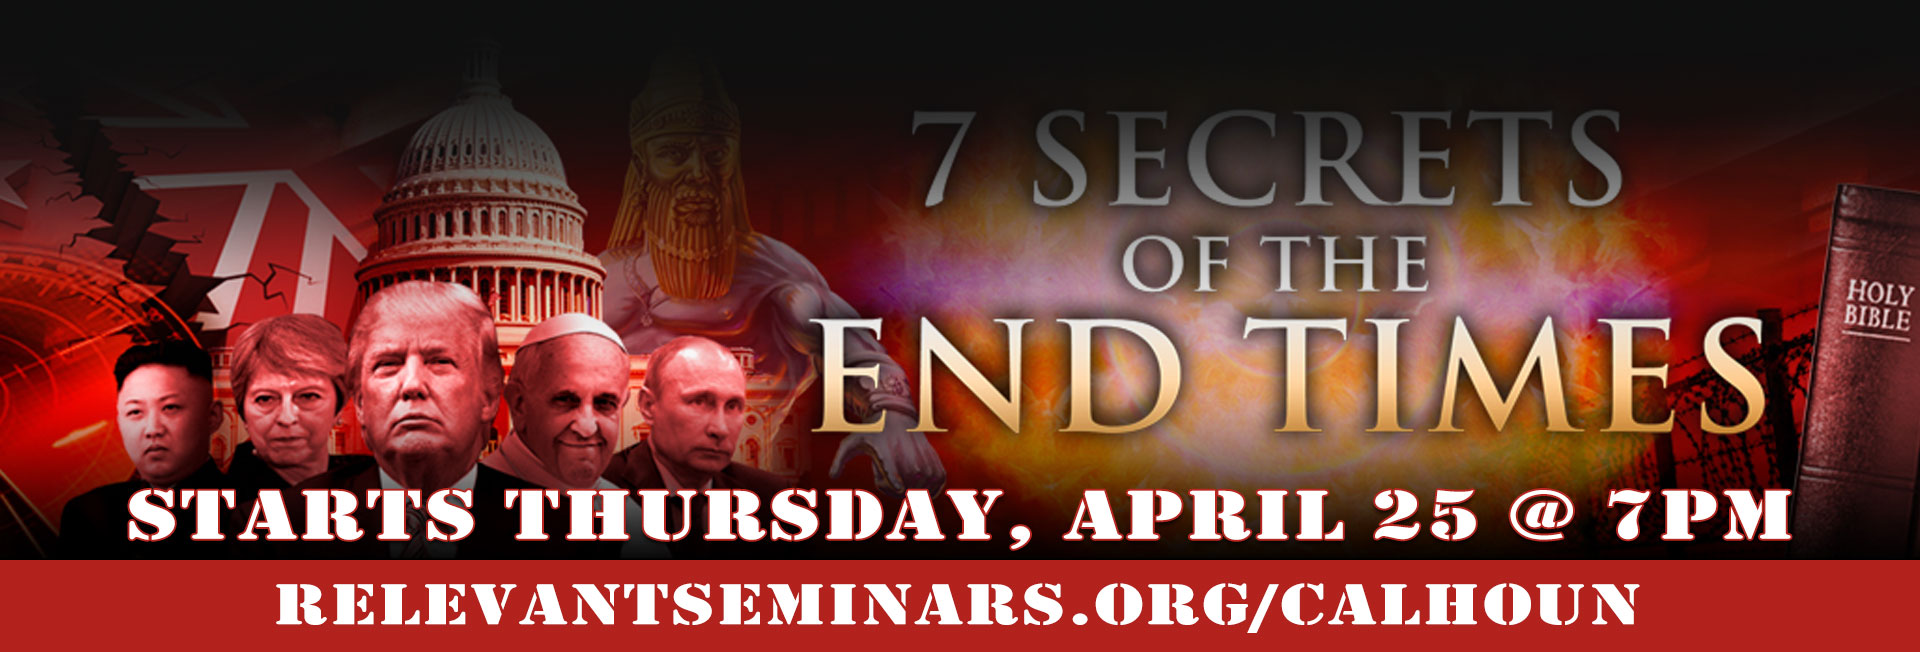 7 Secrets of the End Times - Begins Thursday  April 25, 2019 - 7pm